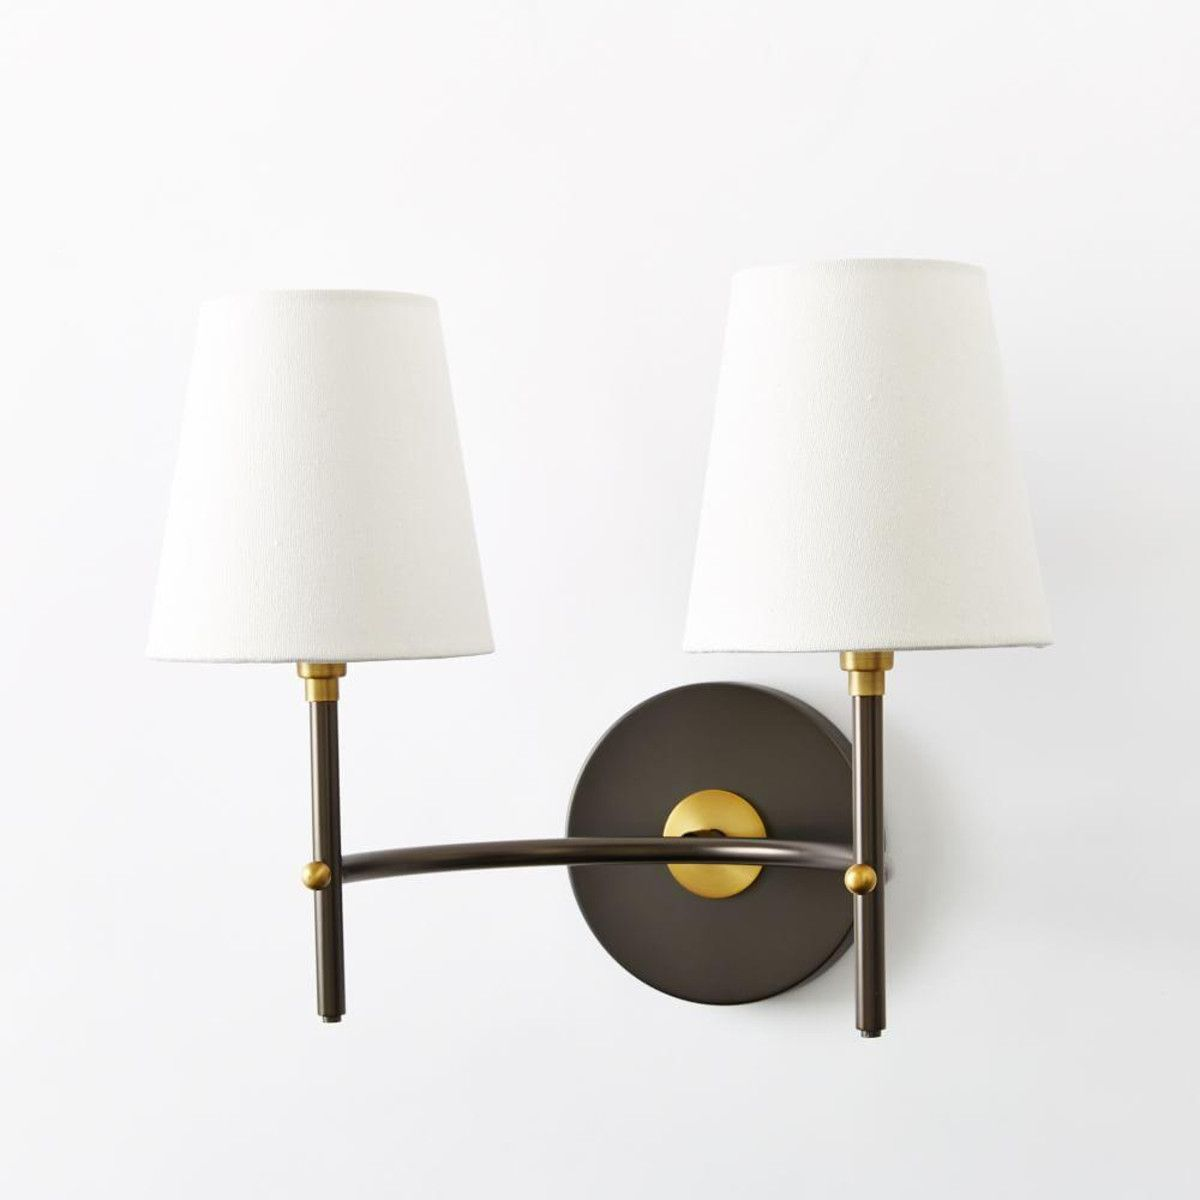 outdoor century house elegant sconces marvelous exterior modern good luxury mid wall of sconce svm